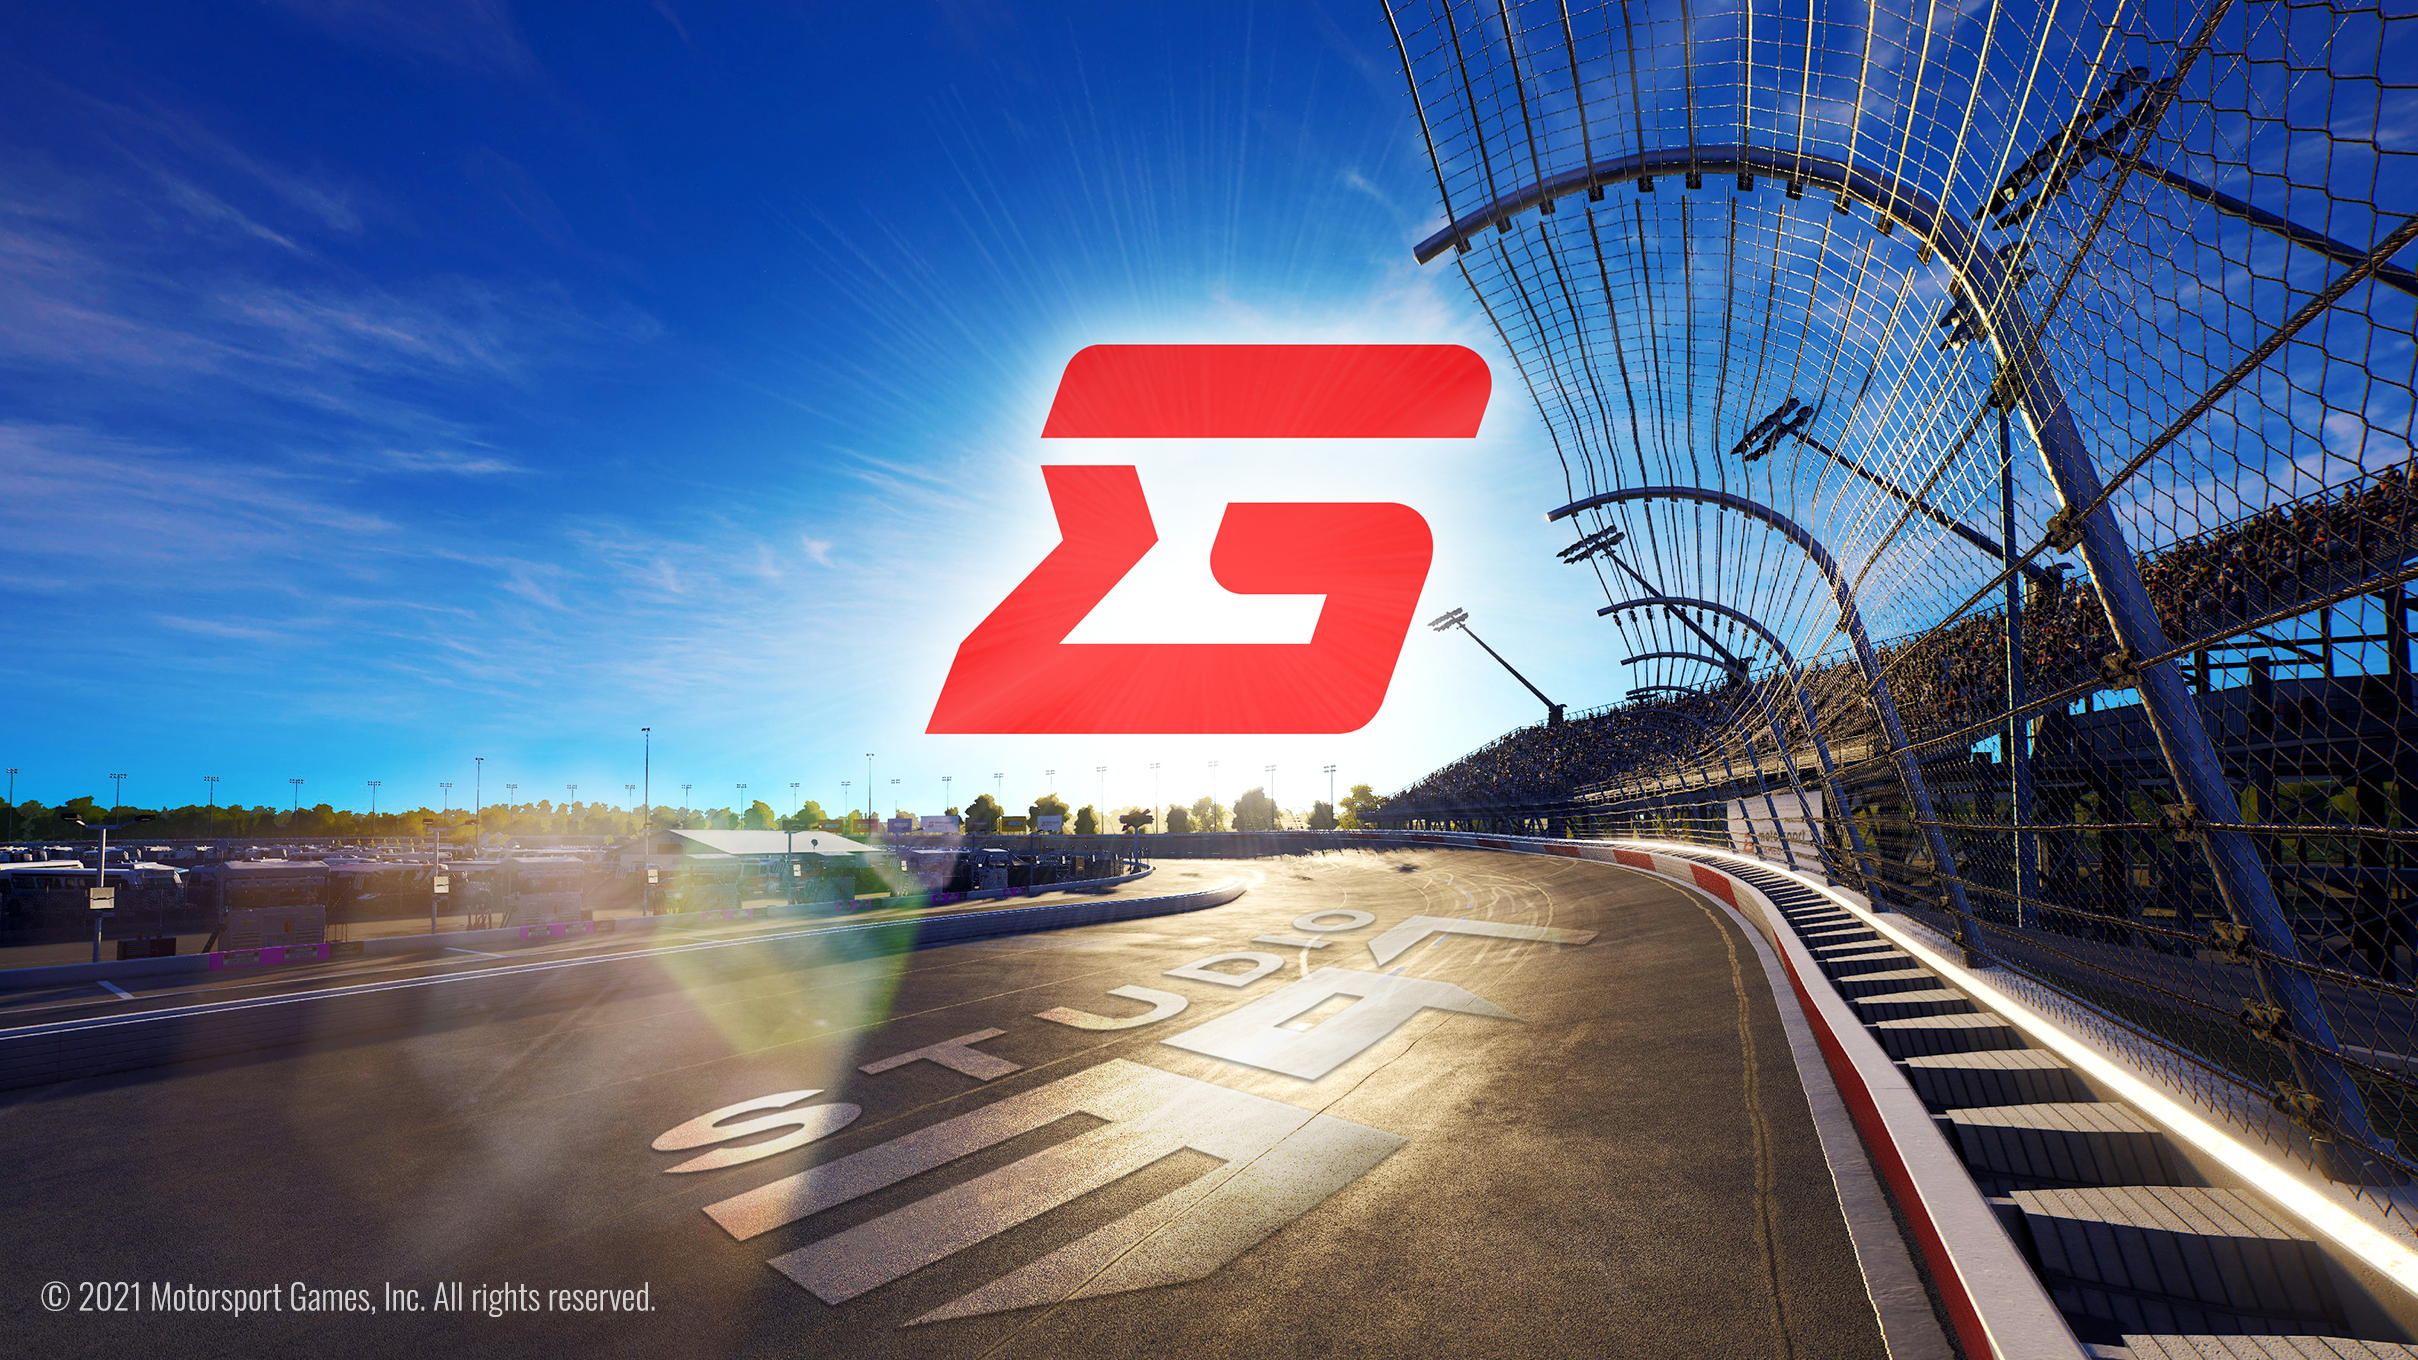 The next NASCAR game confirmed to use rFactor 2 physics